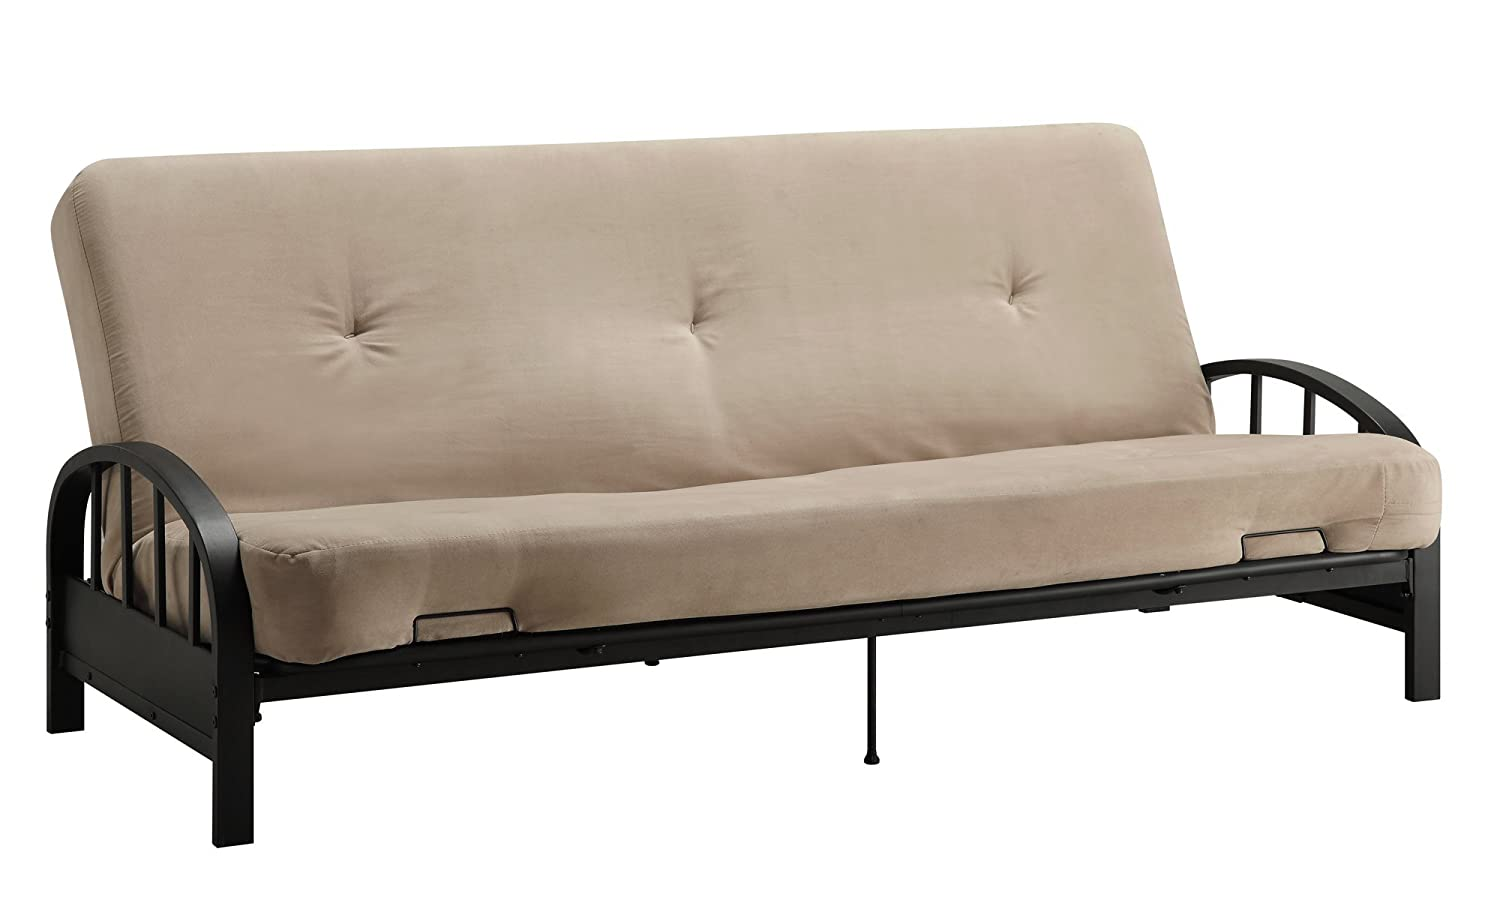 Amazon.com: DHP Aiden Futon Metal Frame, Converts Easily to a Full ...